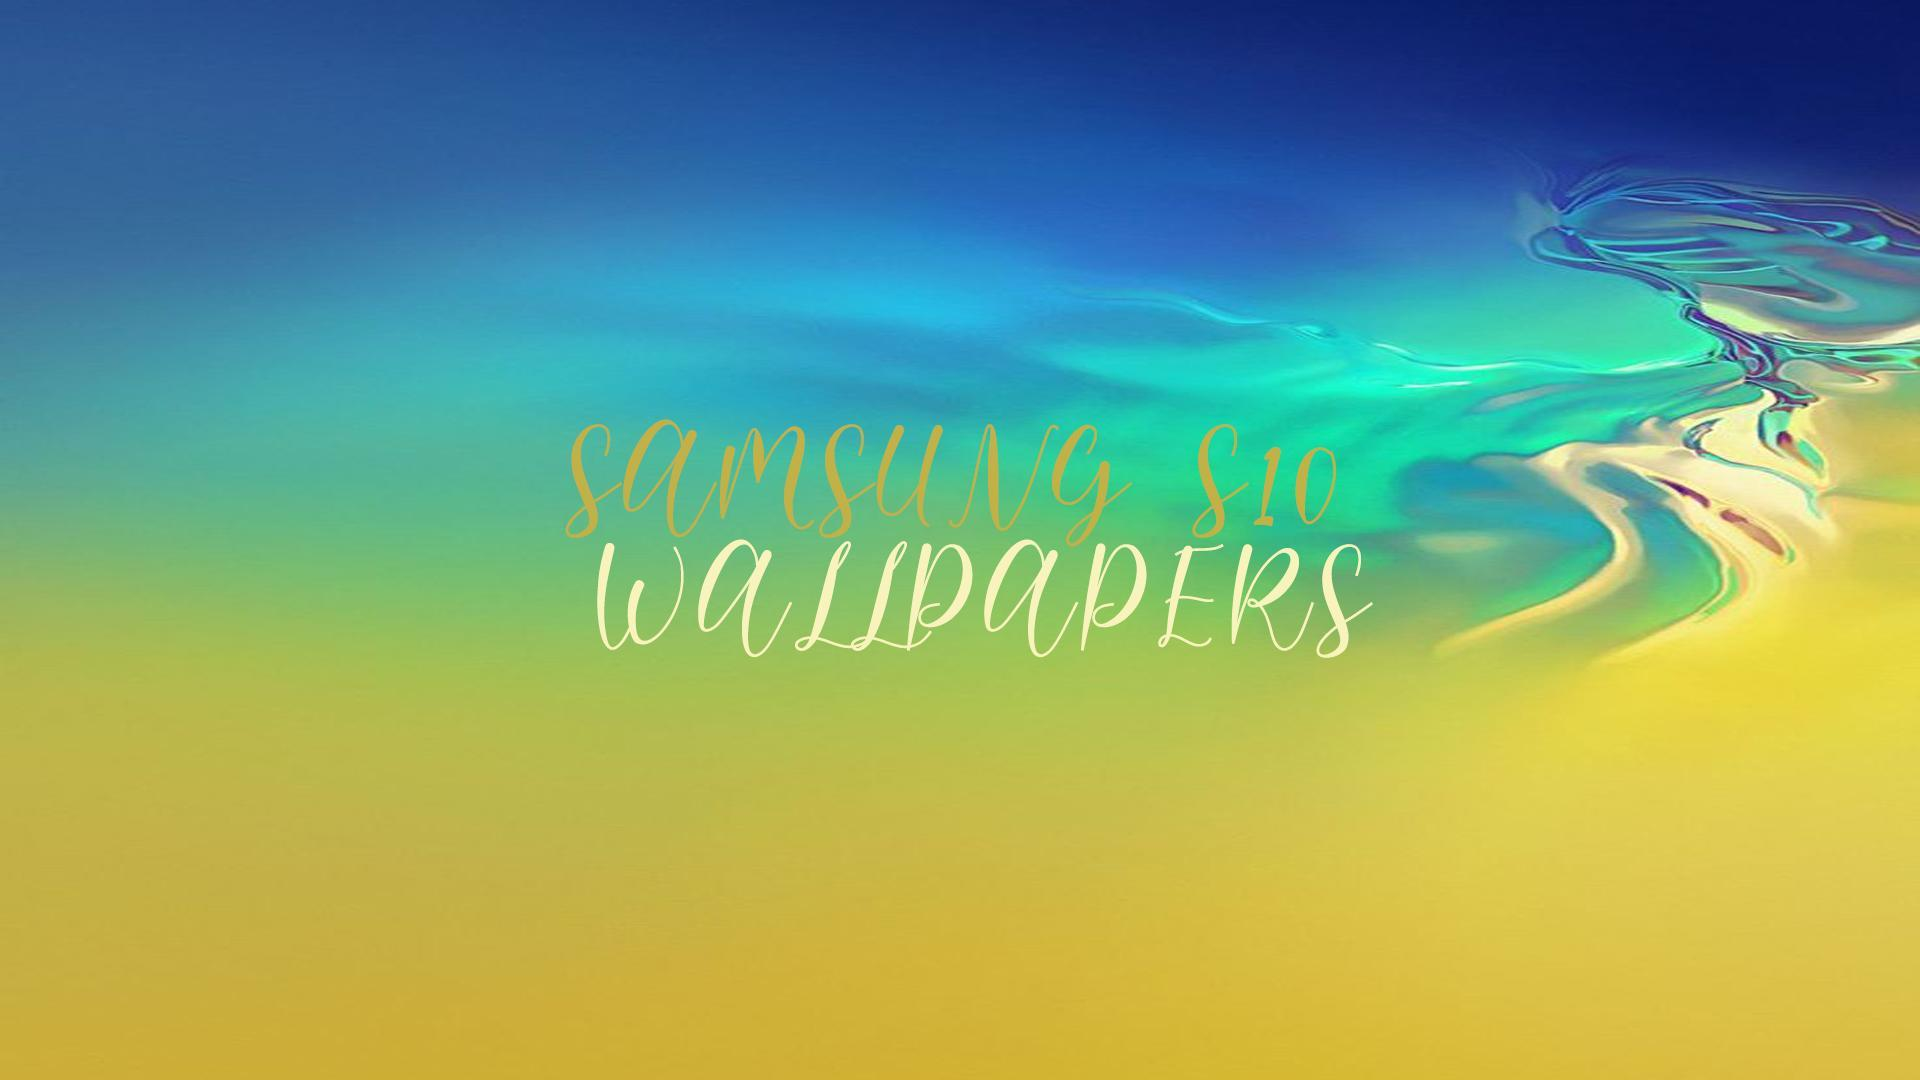 Wallpaper Samsung S10 S10 Plus S10e Full Hd For Android Apk Download